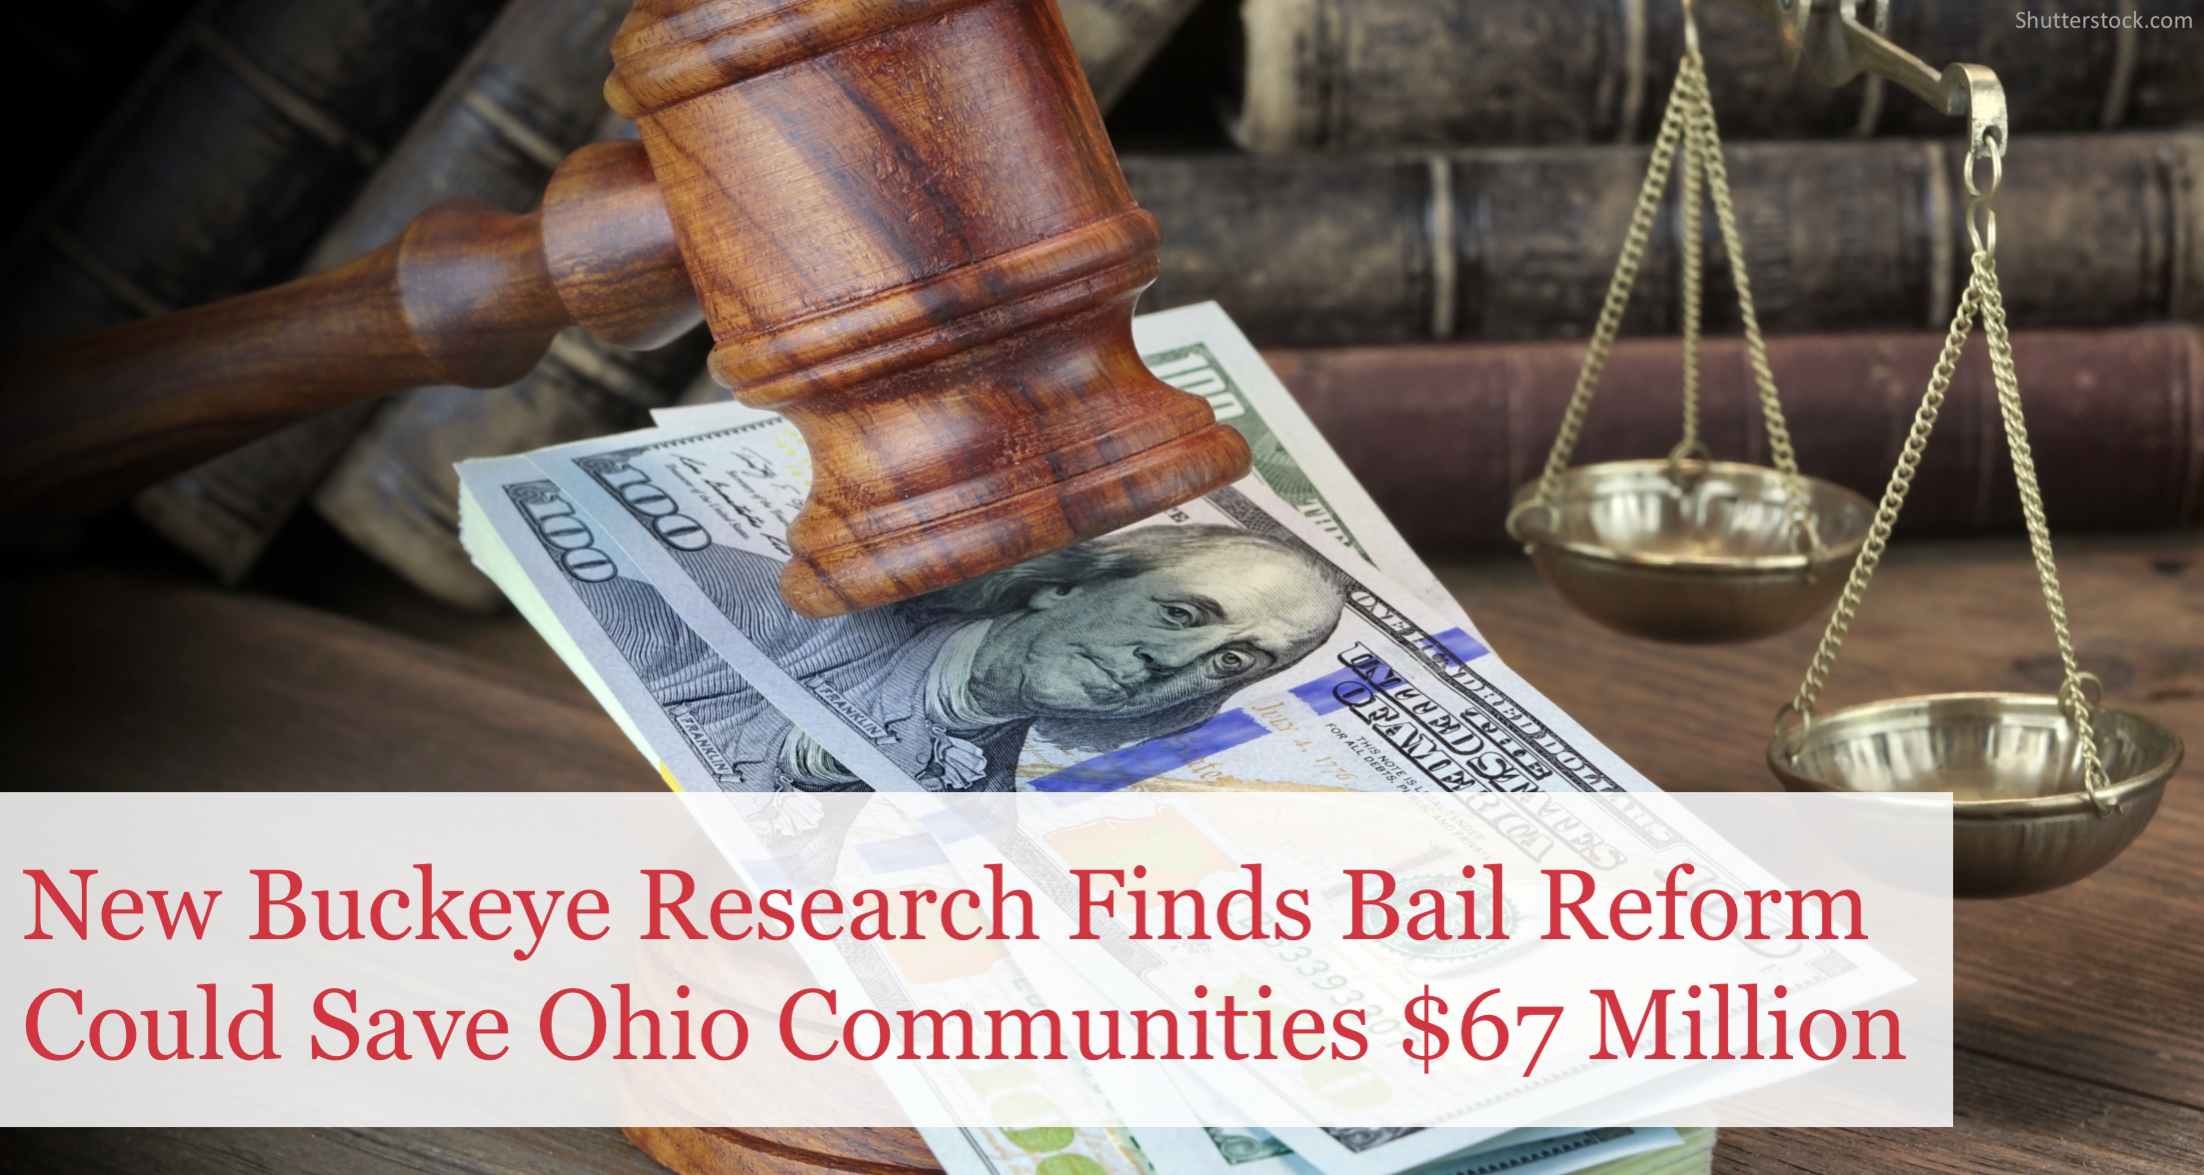 New Buckeye Institute Research Finds Bail Reform Could Save Ohio Communities $67 Million